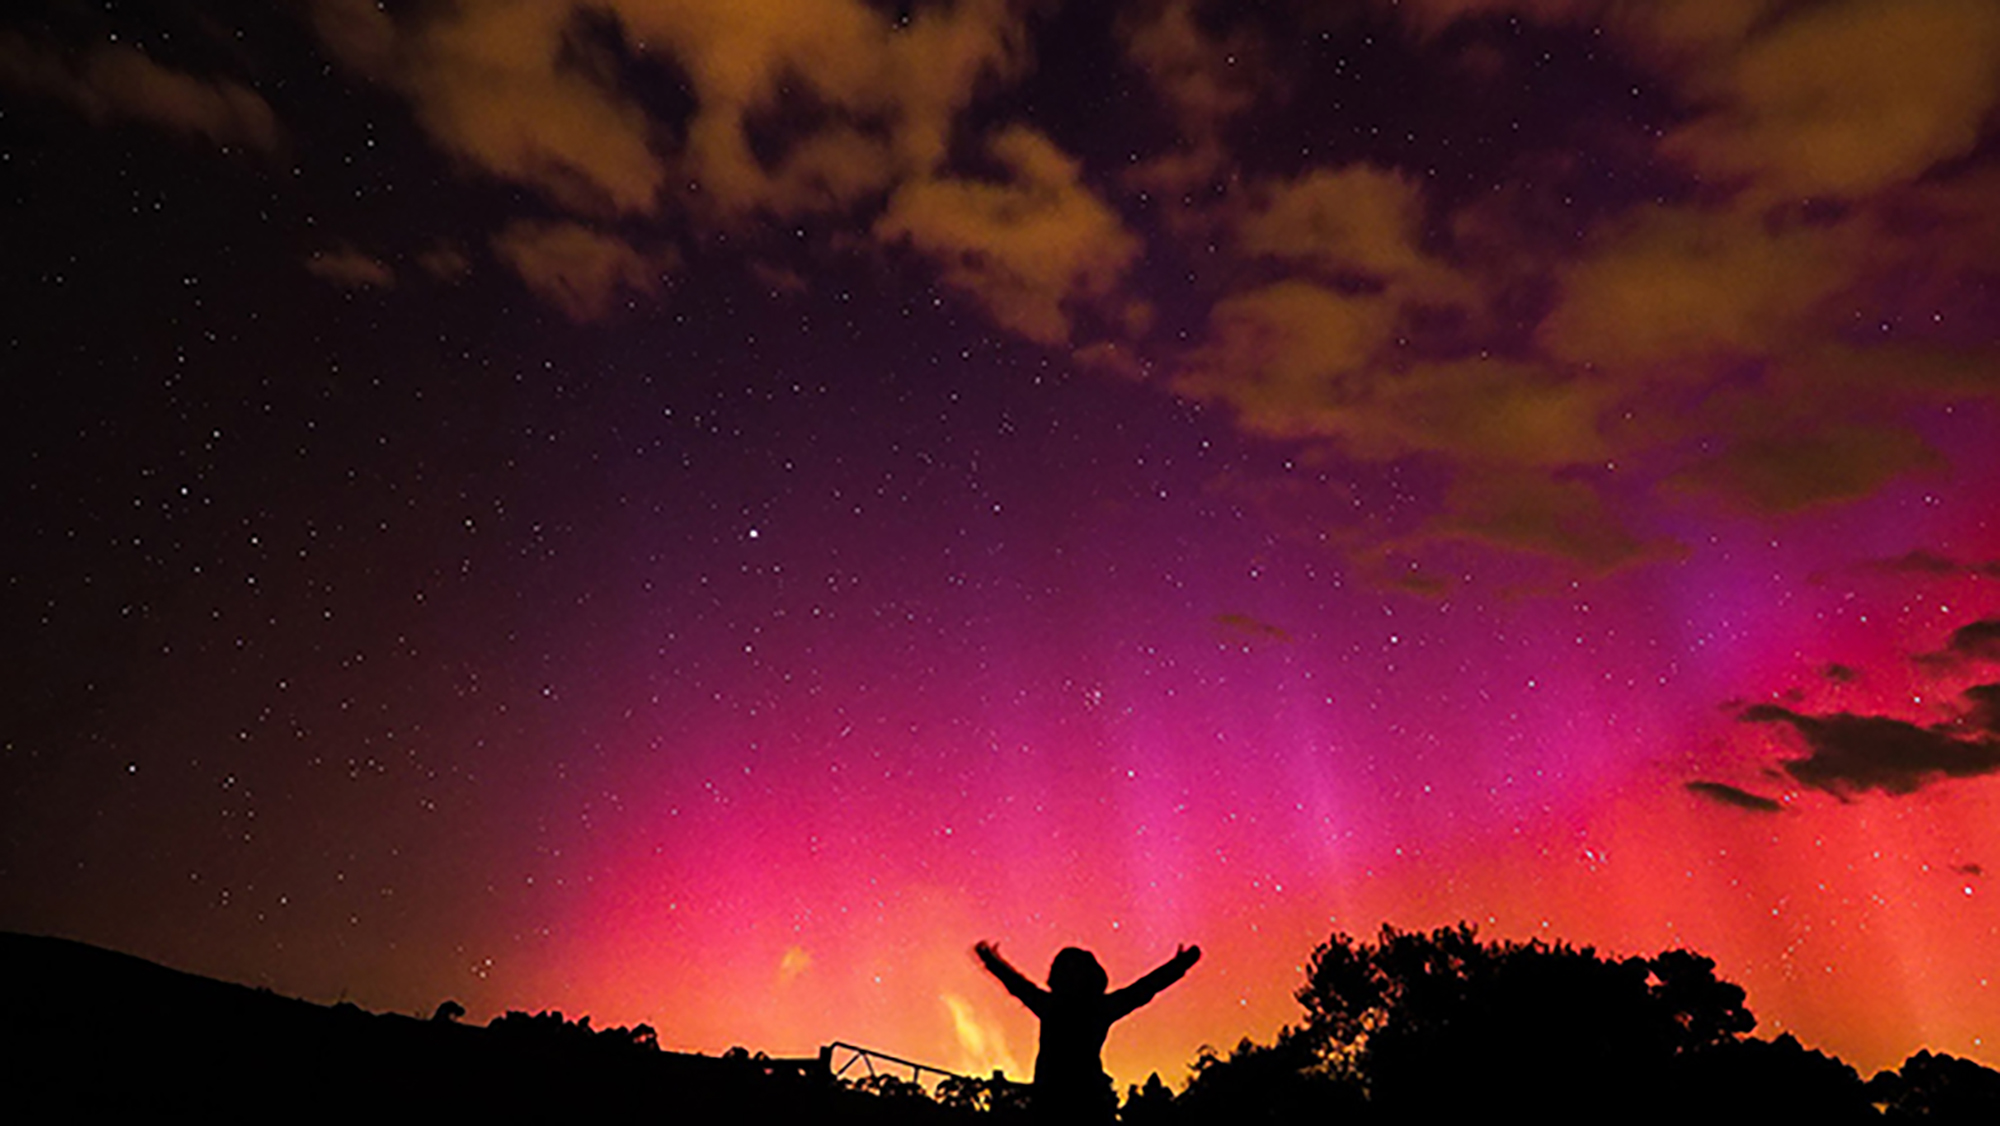 In pictures: breathtaking photos of the Aurora Australis